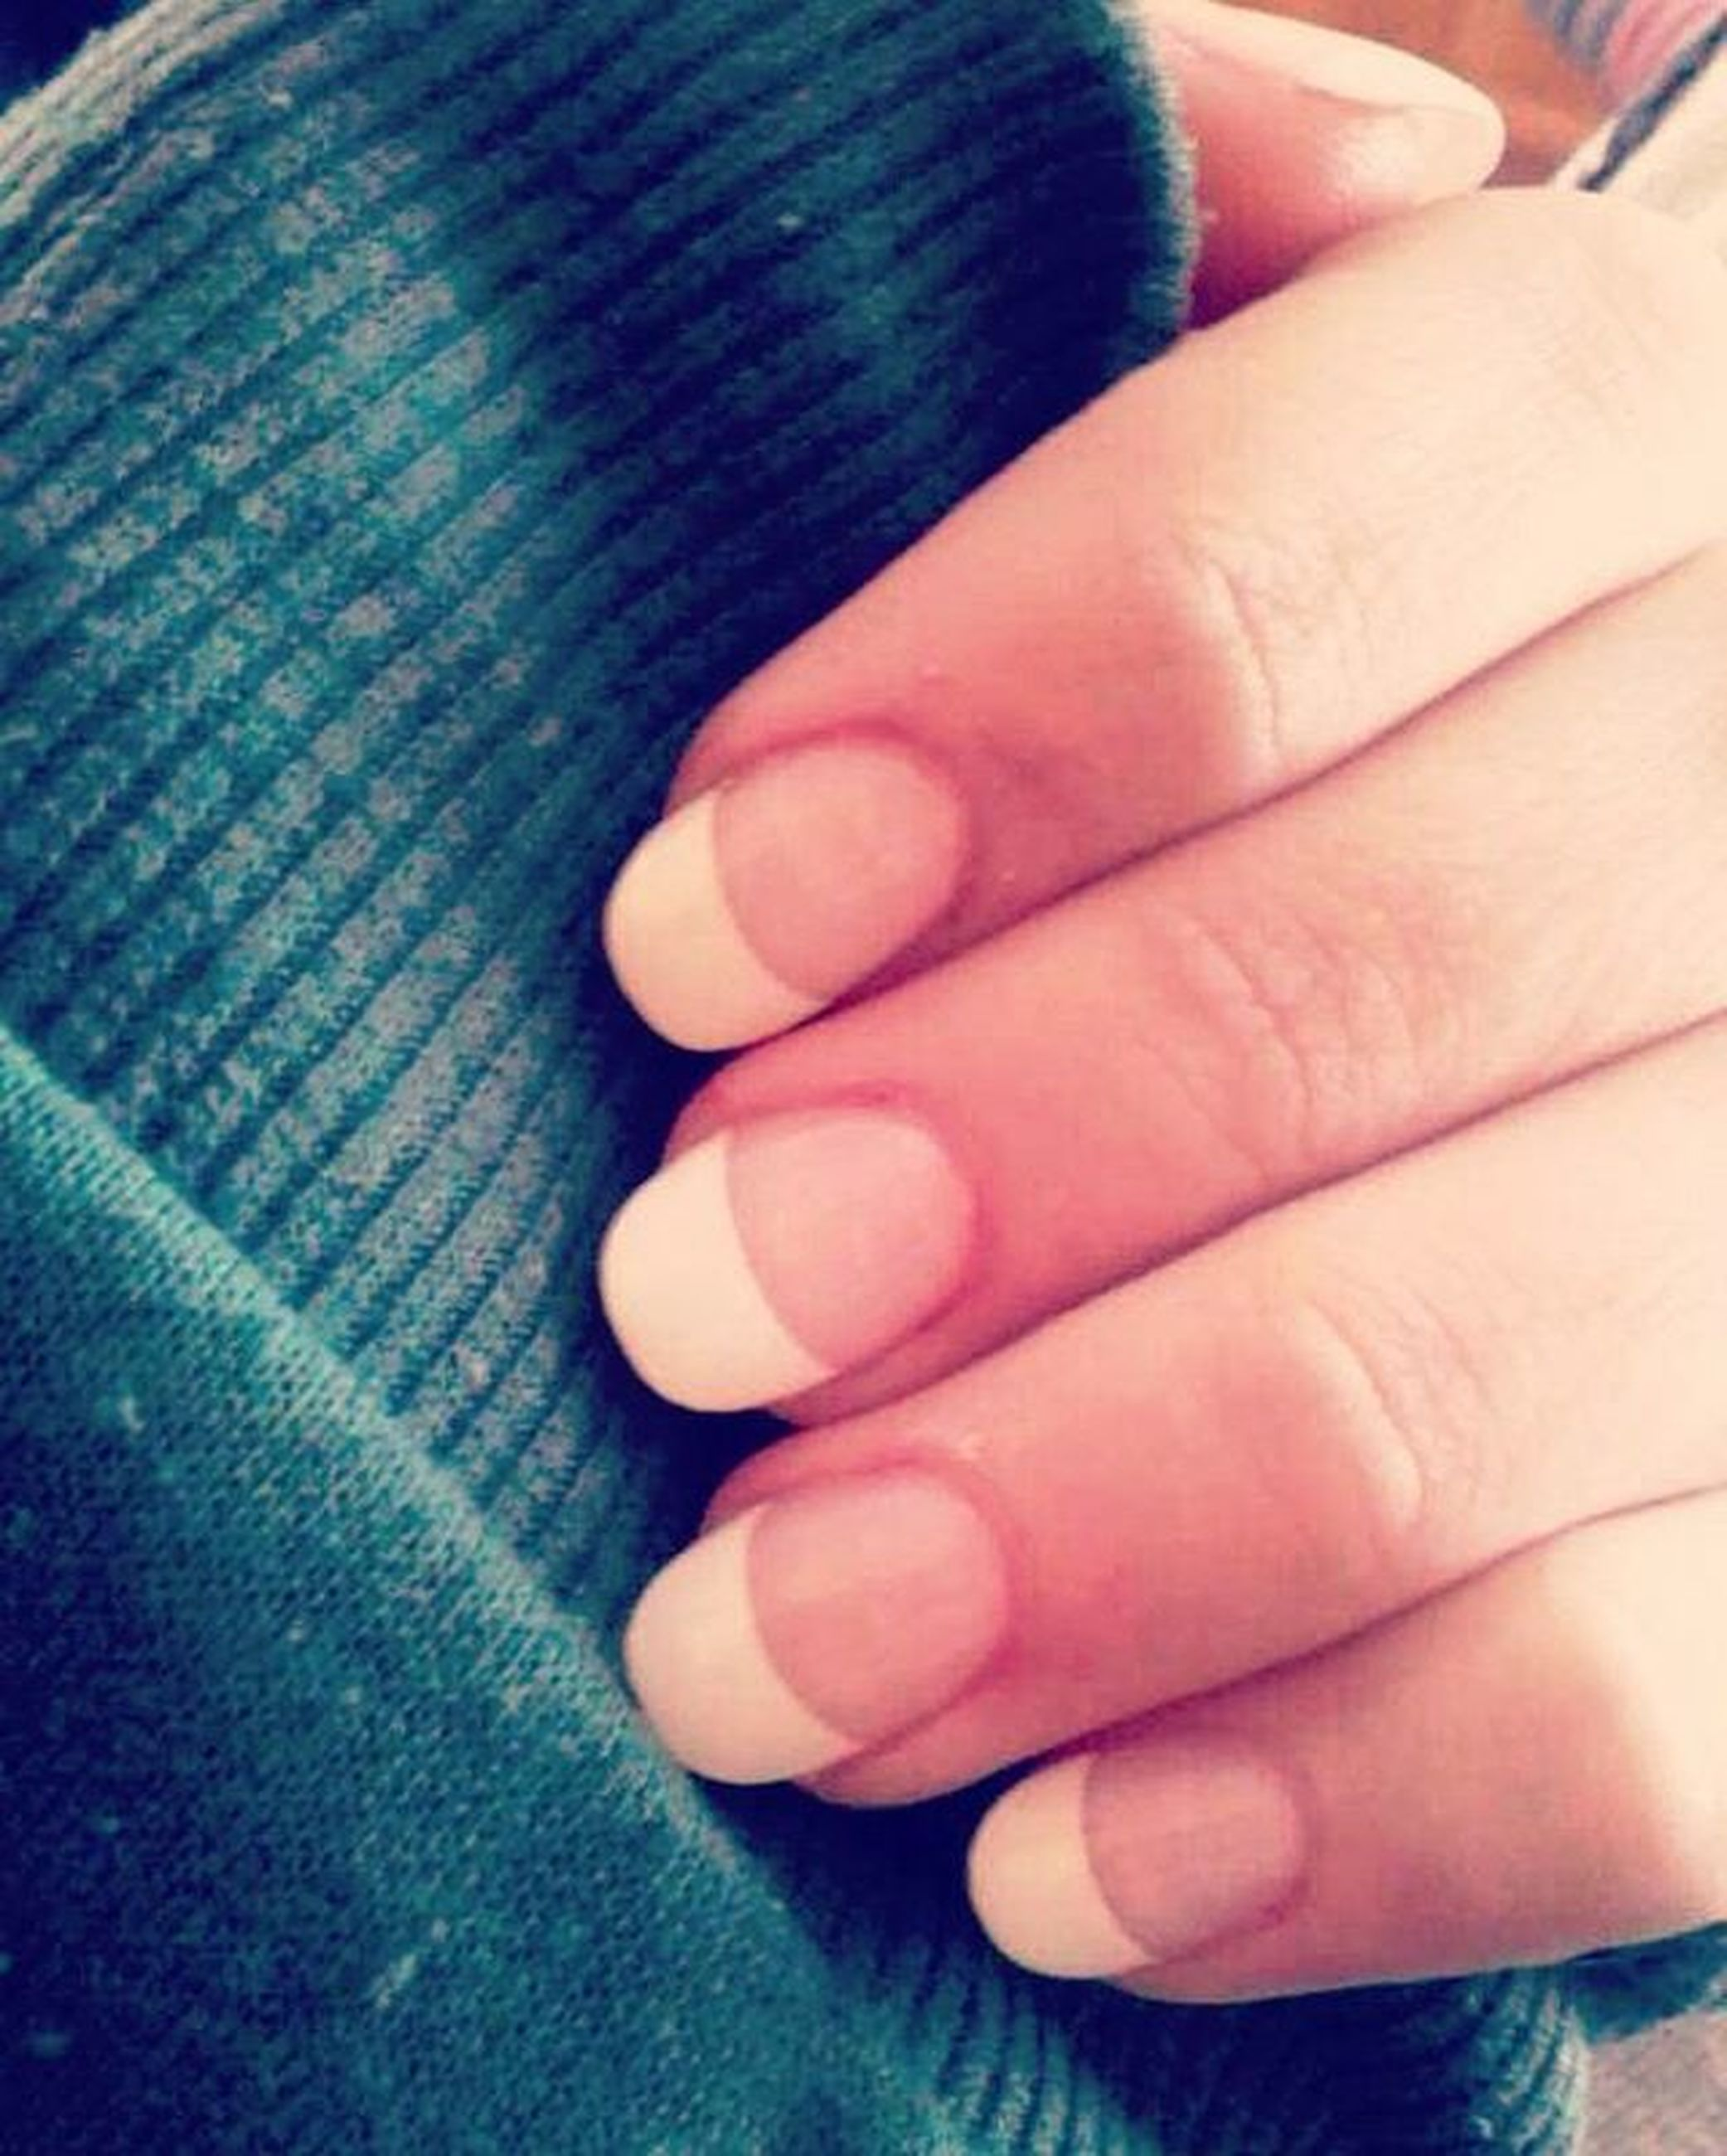 person, part of, close-up, indoors, lifestyles, high angle view, cropped, low section, human finger, personal perspective, unrecognizable person, holding, blue, leisure activity, nail polish